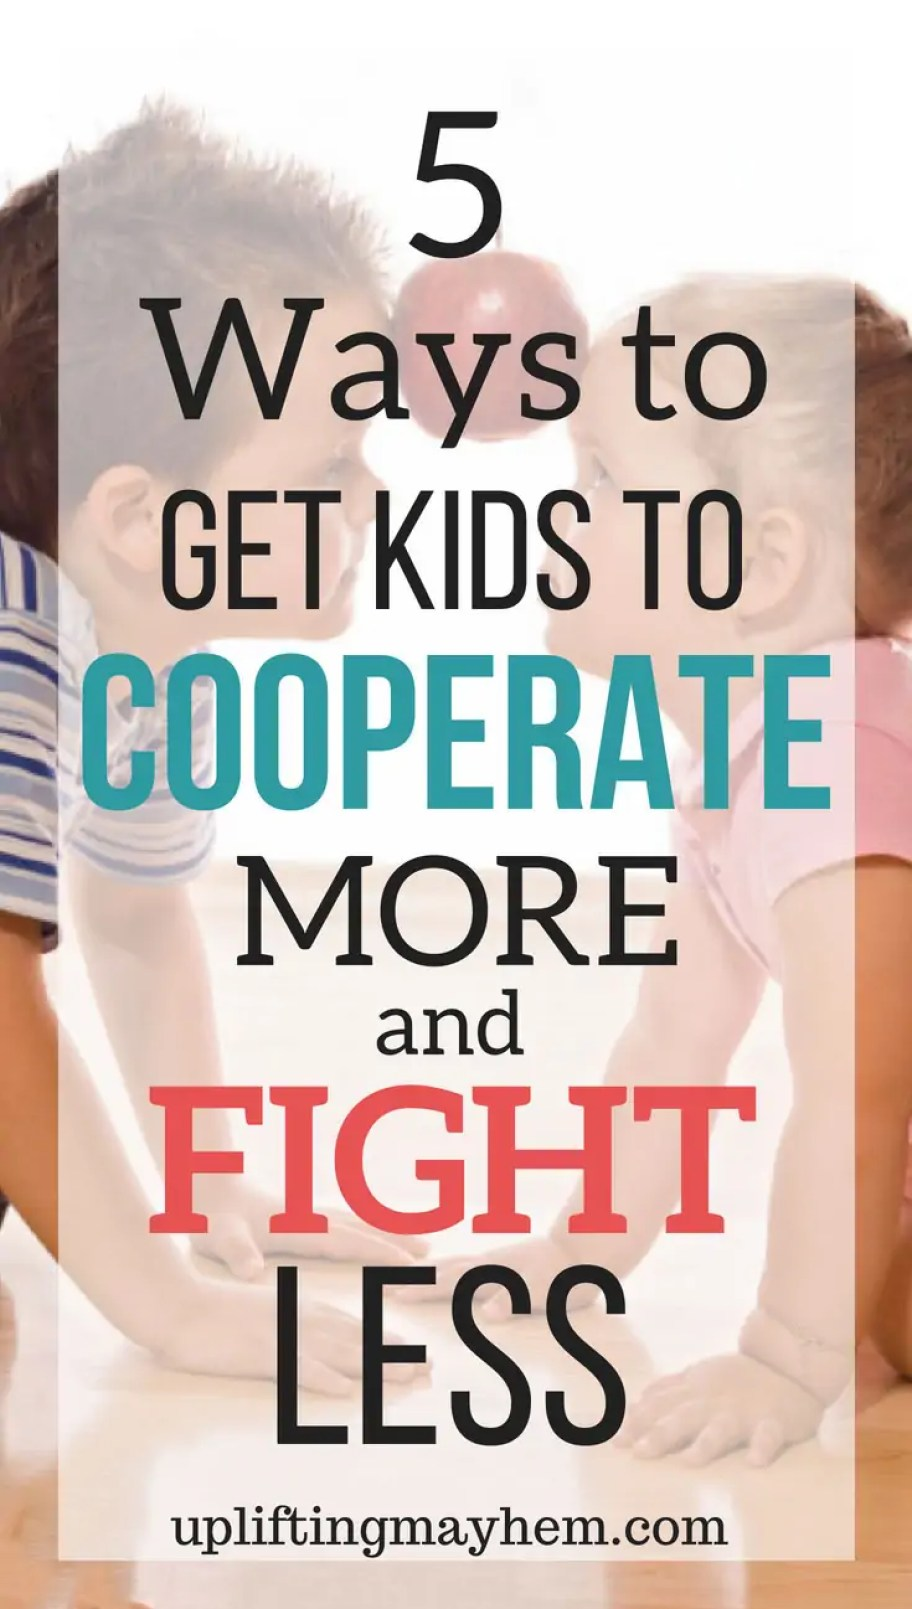 Are your kids fighting? Here are some helps and ideas to try stop the fighting and get your kids to cooperate more.